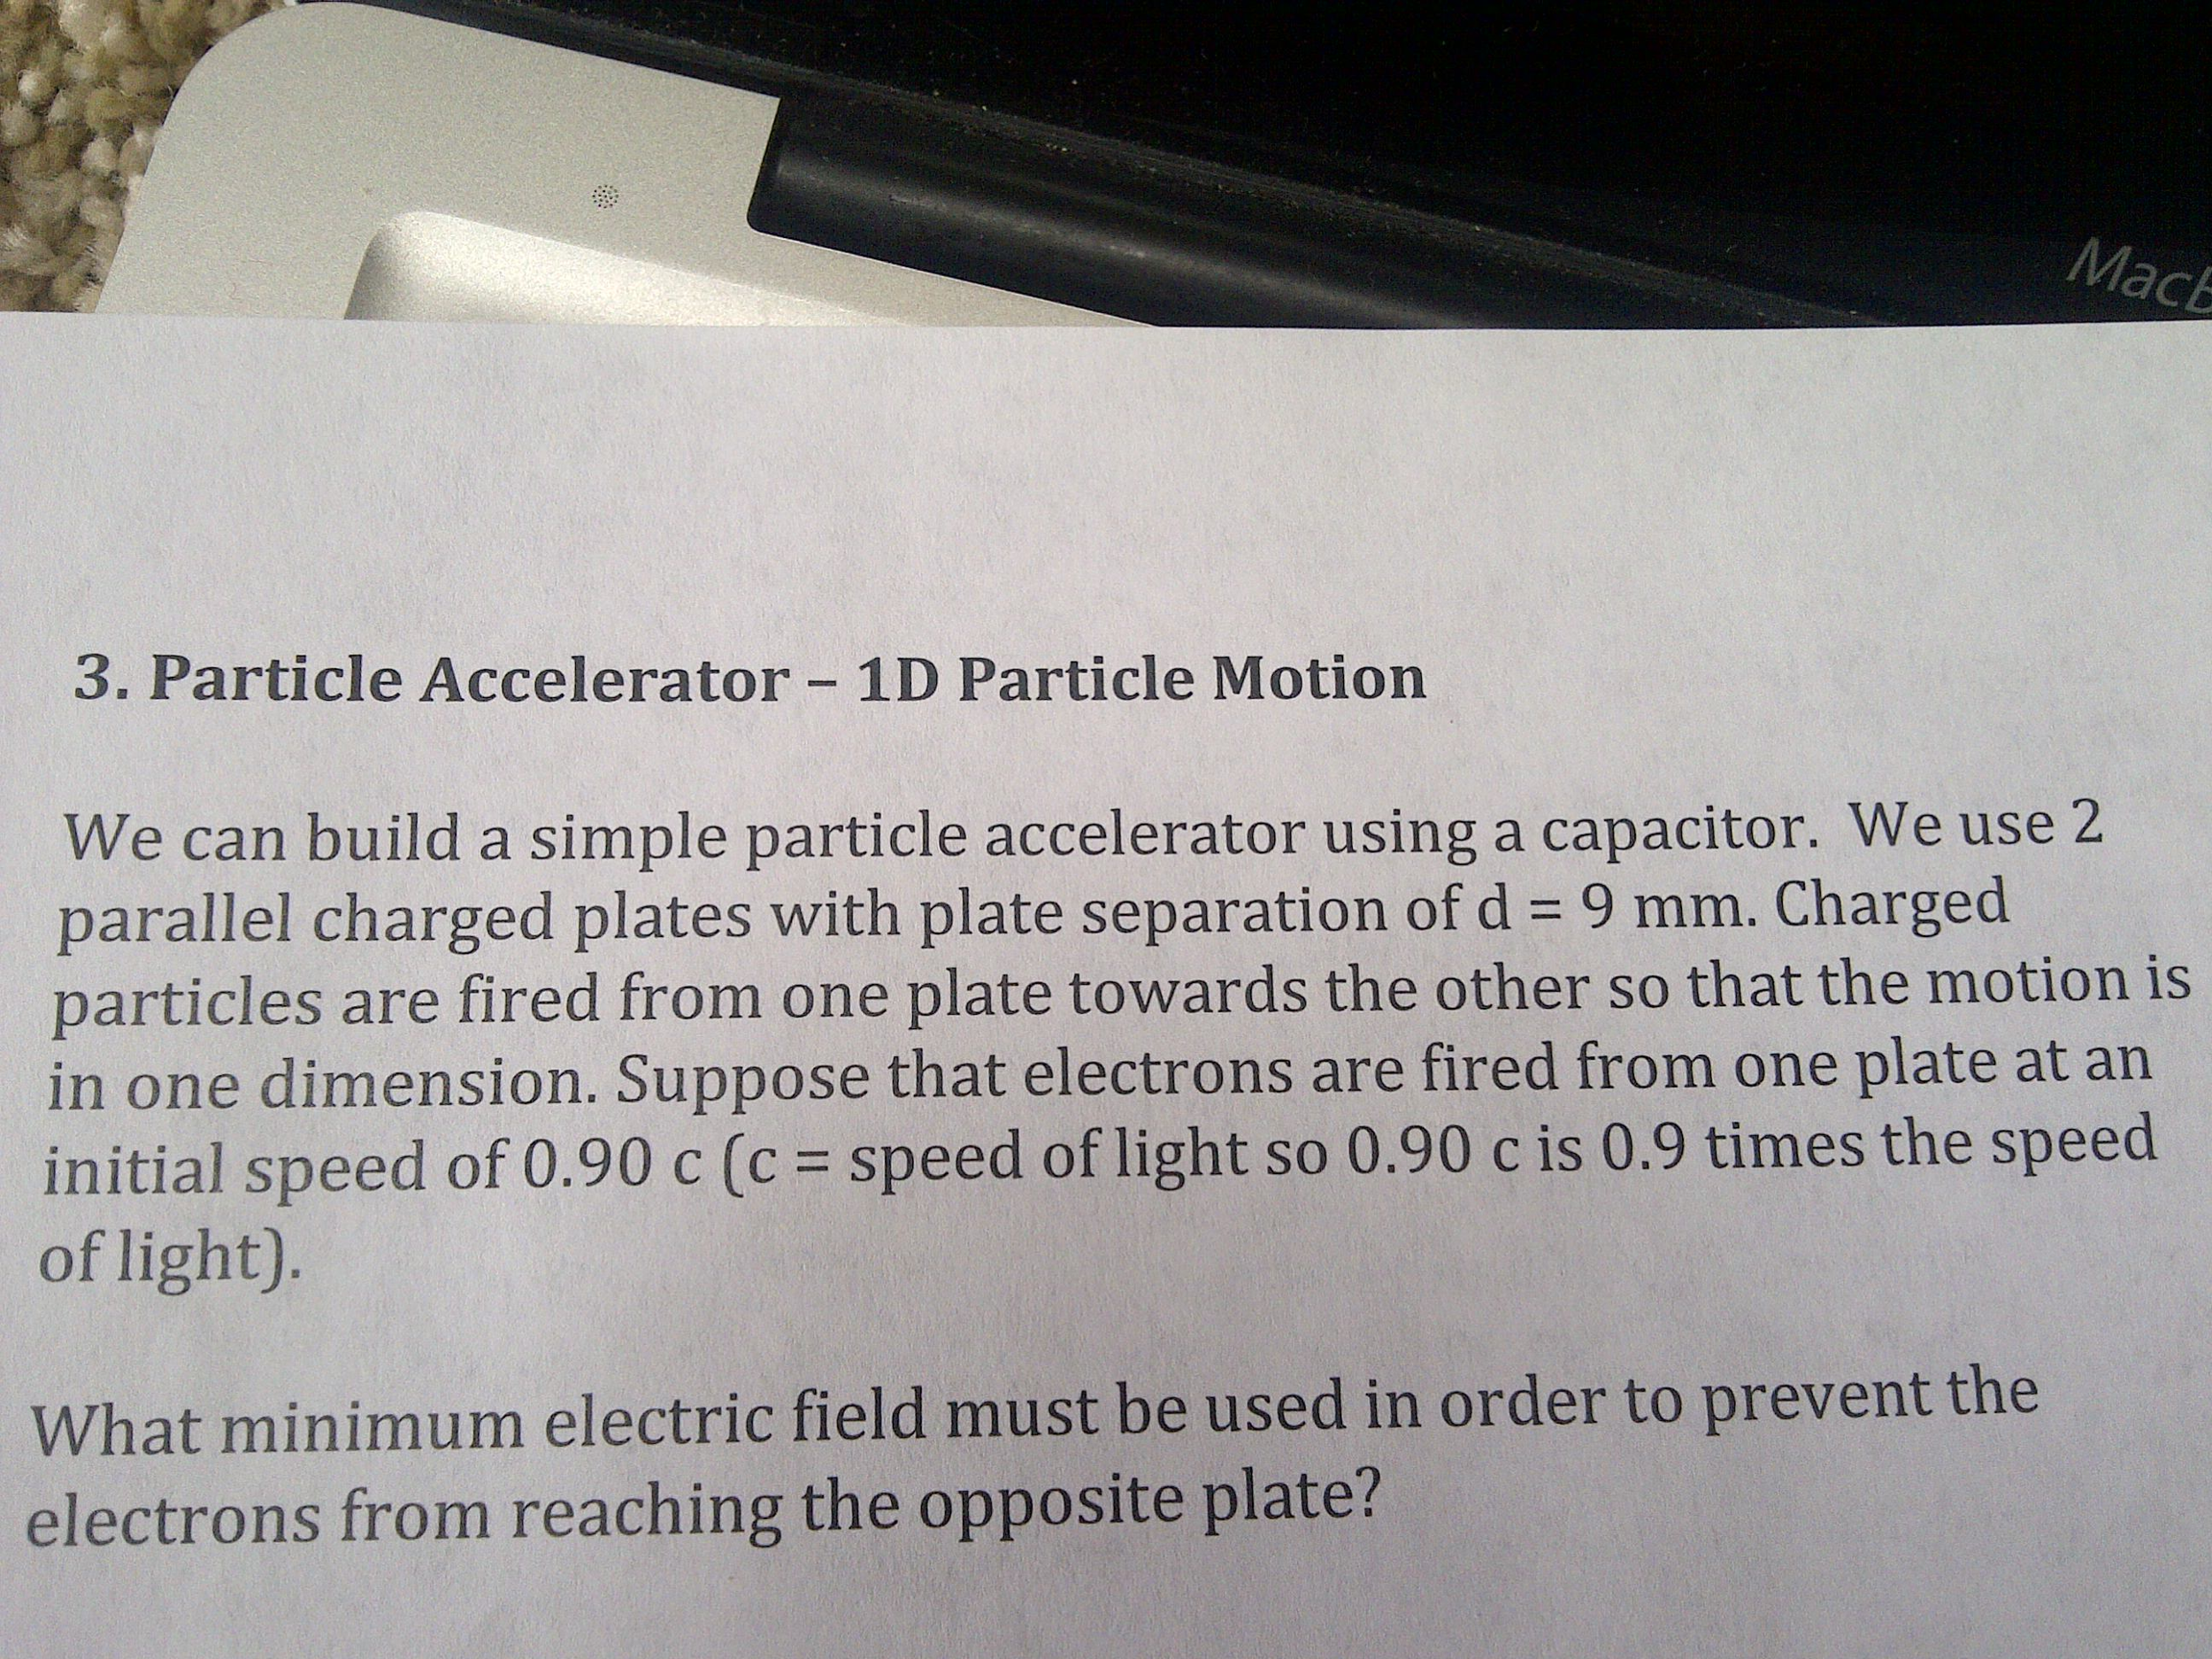 We can build a simple particle accelerator using a